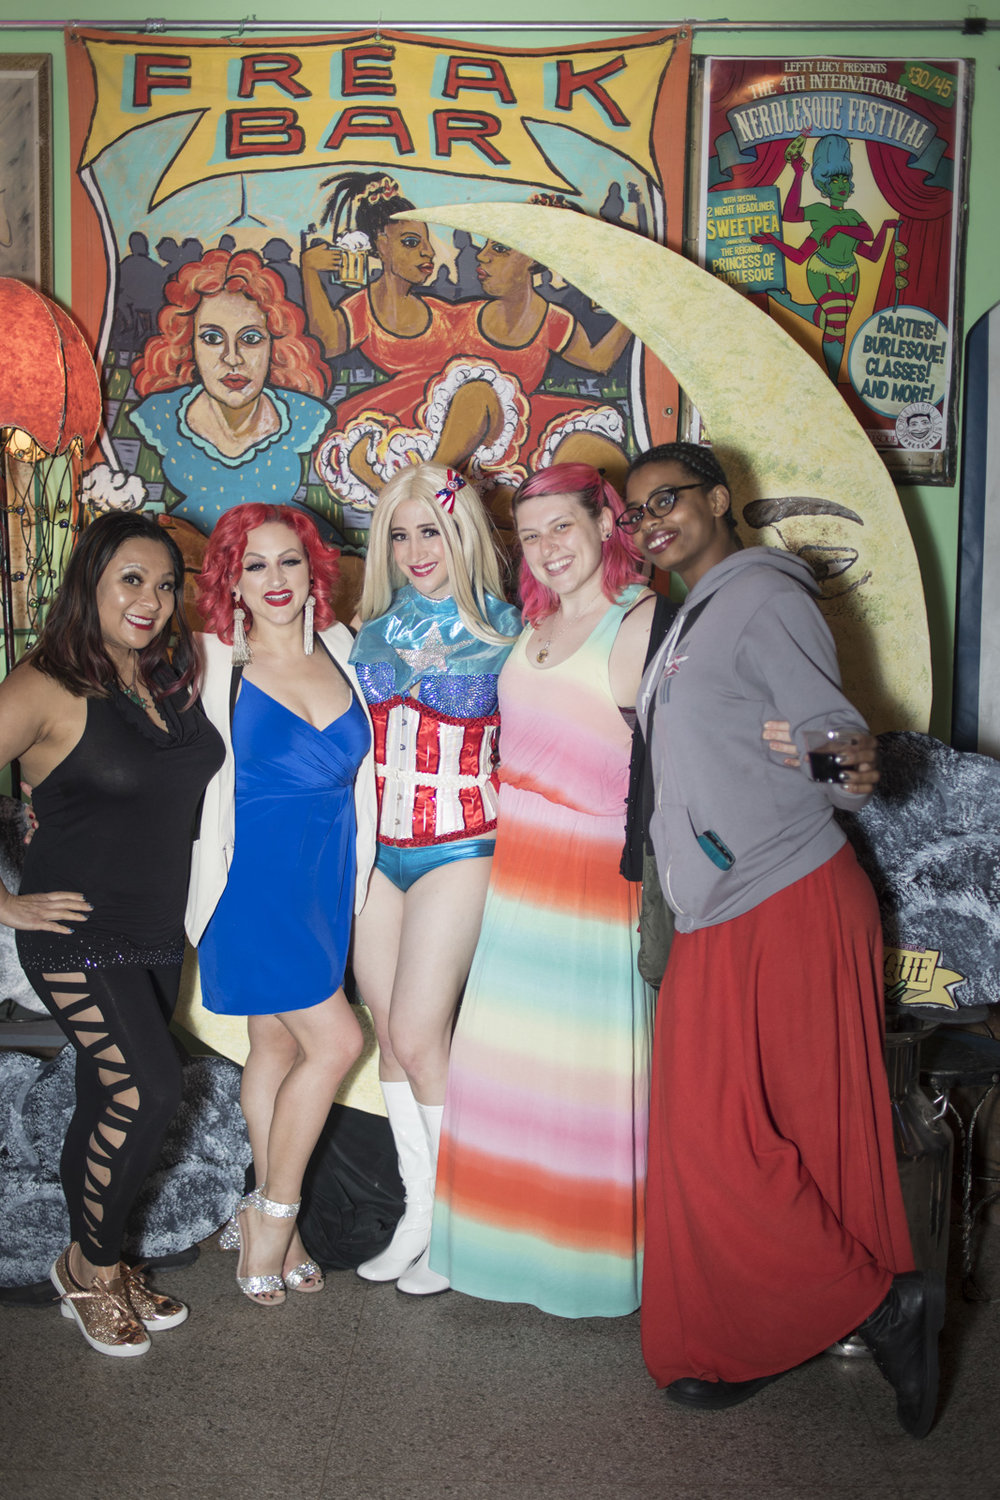 Click here to view photos from the 2018 Nerdlesque Fest Meet N Geek Photo Booth!